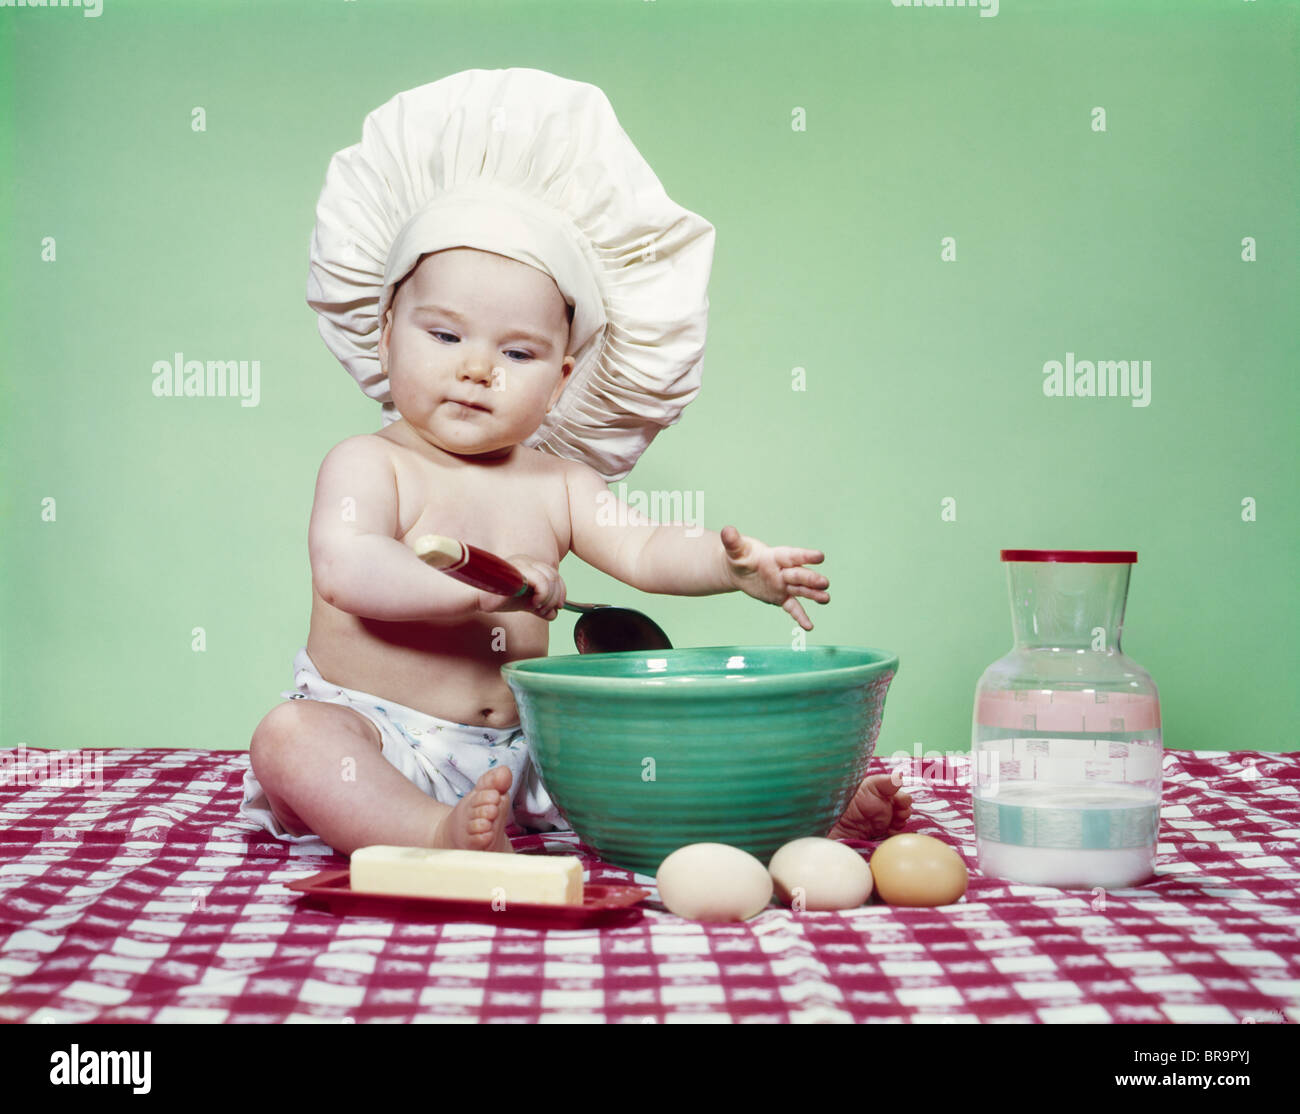 cb3744109ac 1960s BABY WEARING CHEF HAT SPOON MIXING BOWL AND BAKING INGREDIENTS ...